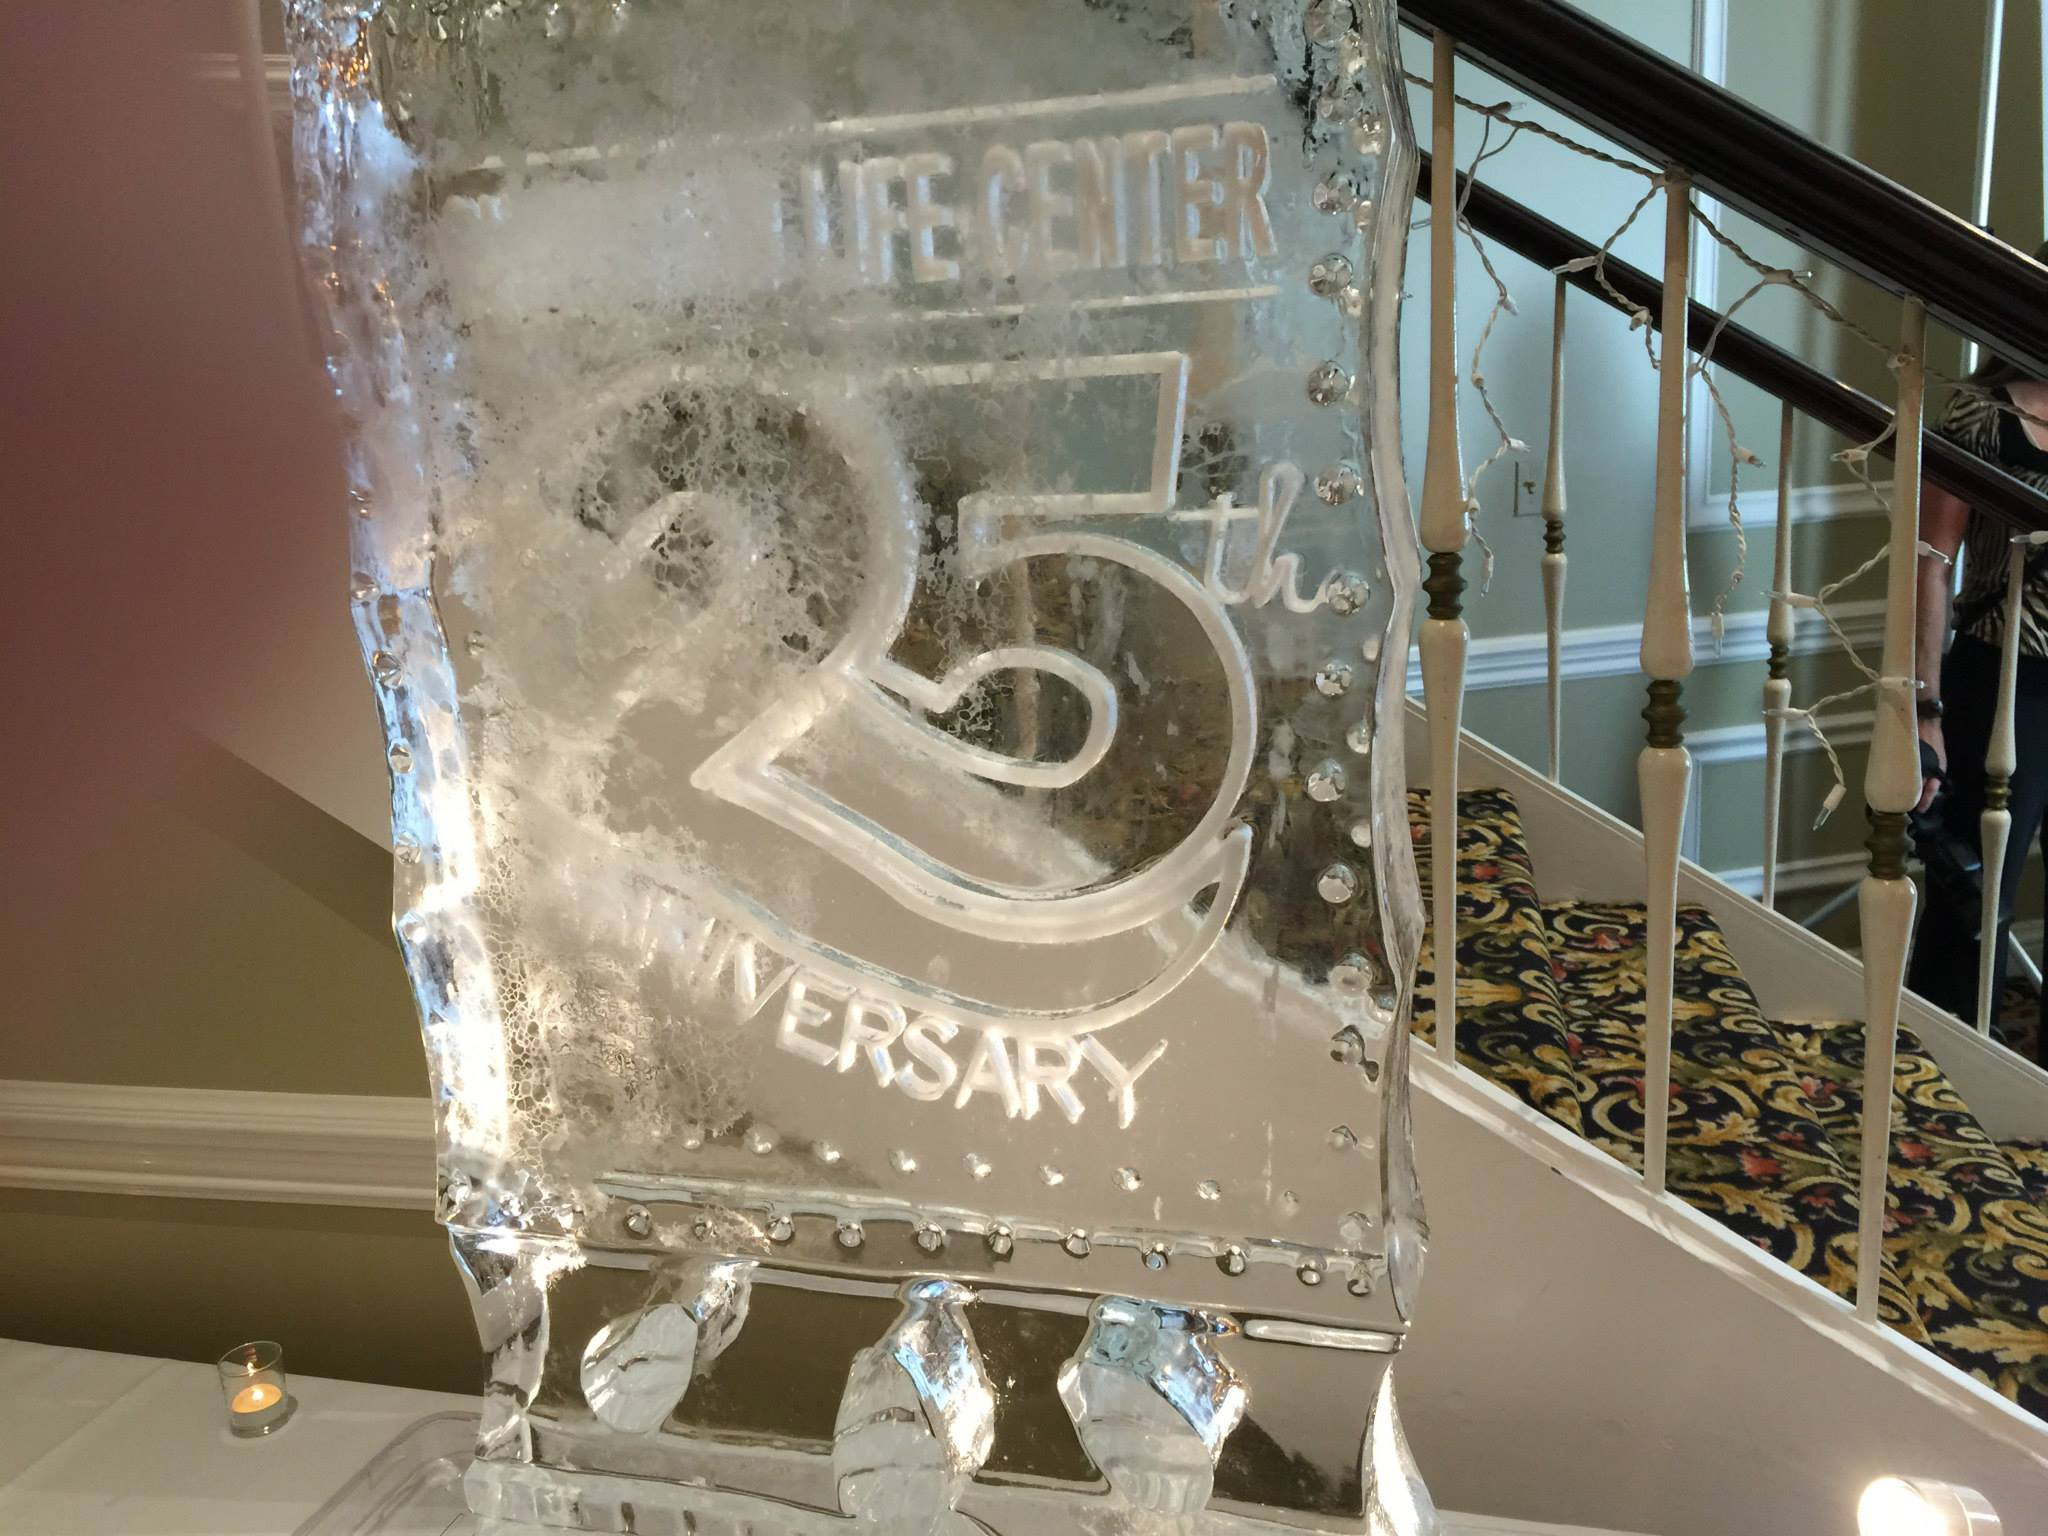 25 years in ice (seems appropriate for winter in Chicago, huh?)